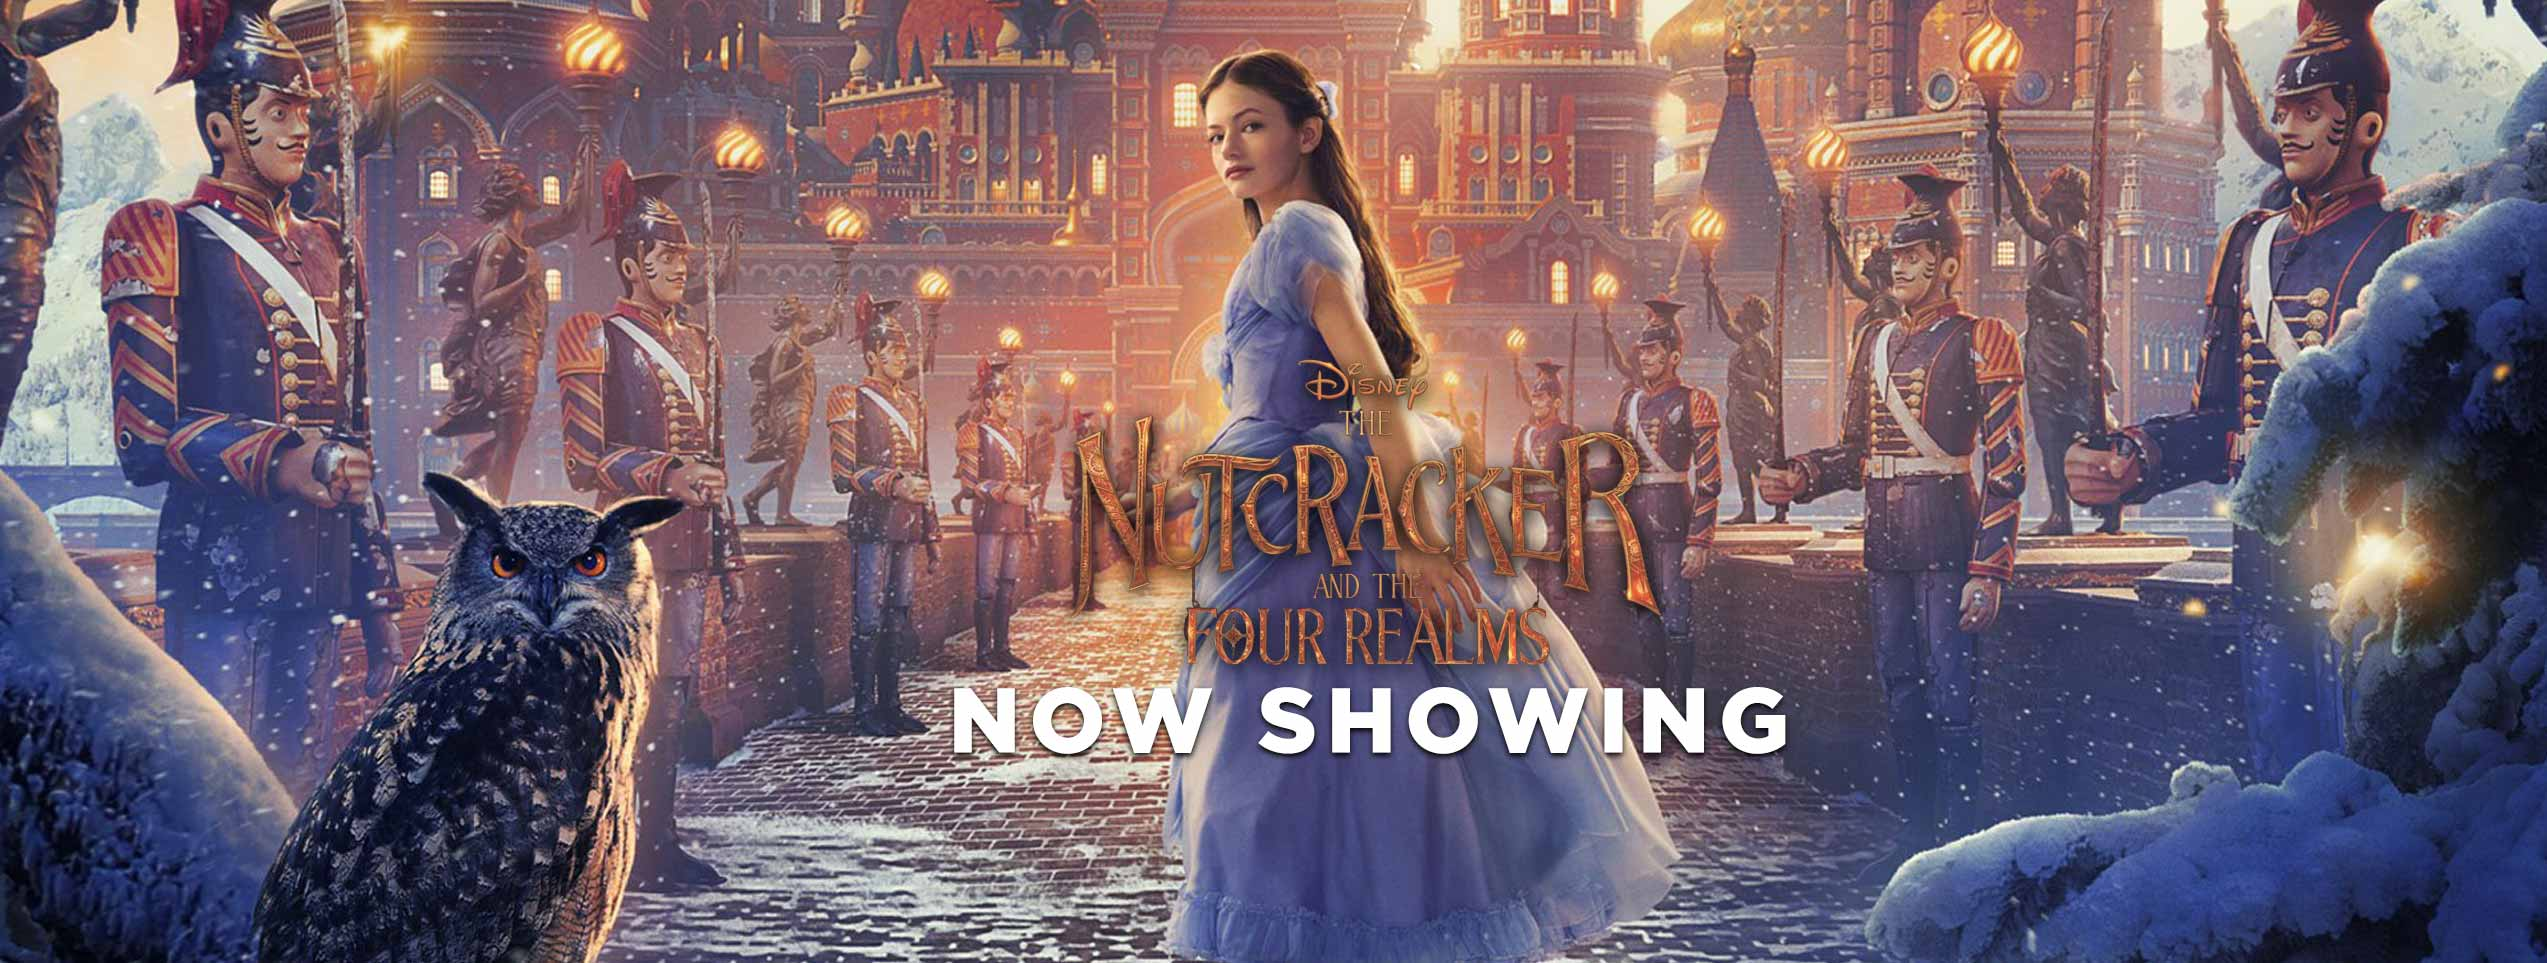 The Nutcracker and the Four Realms (2D) (G) (Eng)